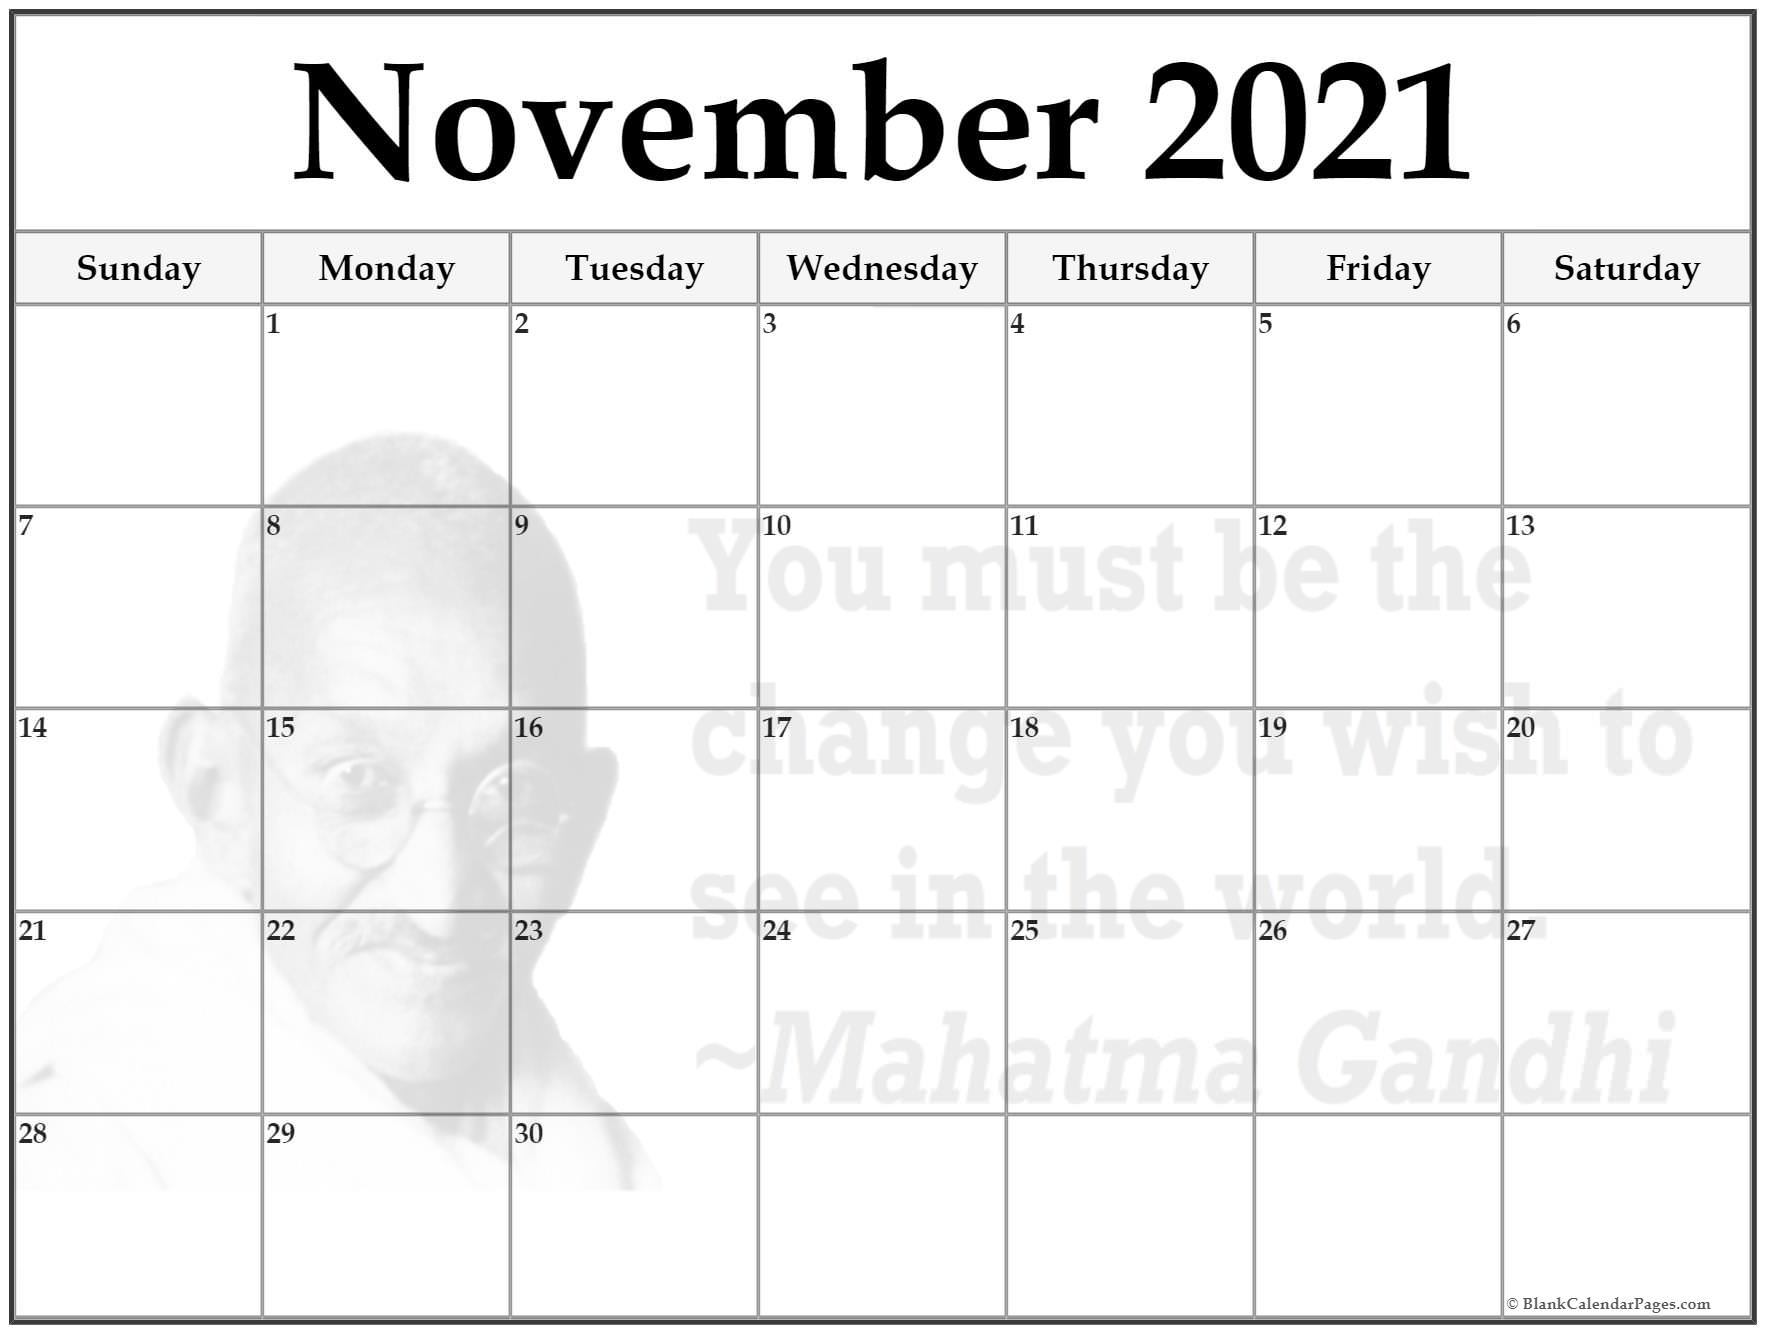 November 2020 monthly calendar template. You must be the change you wish to see in the world. ~Mahatma Gandhi